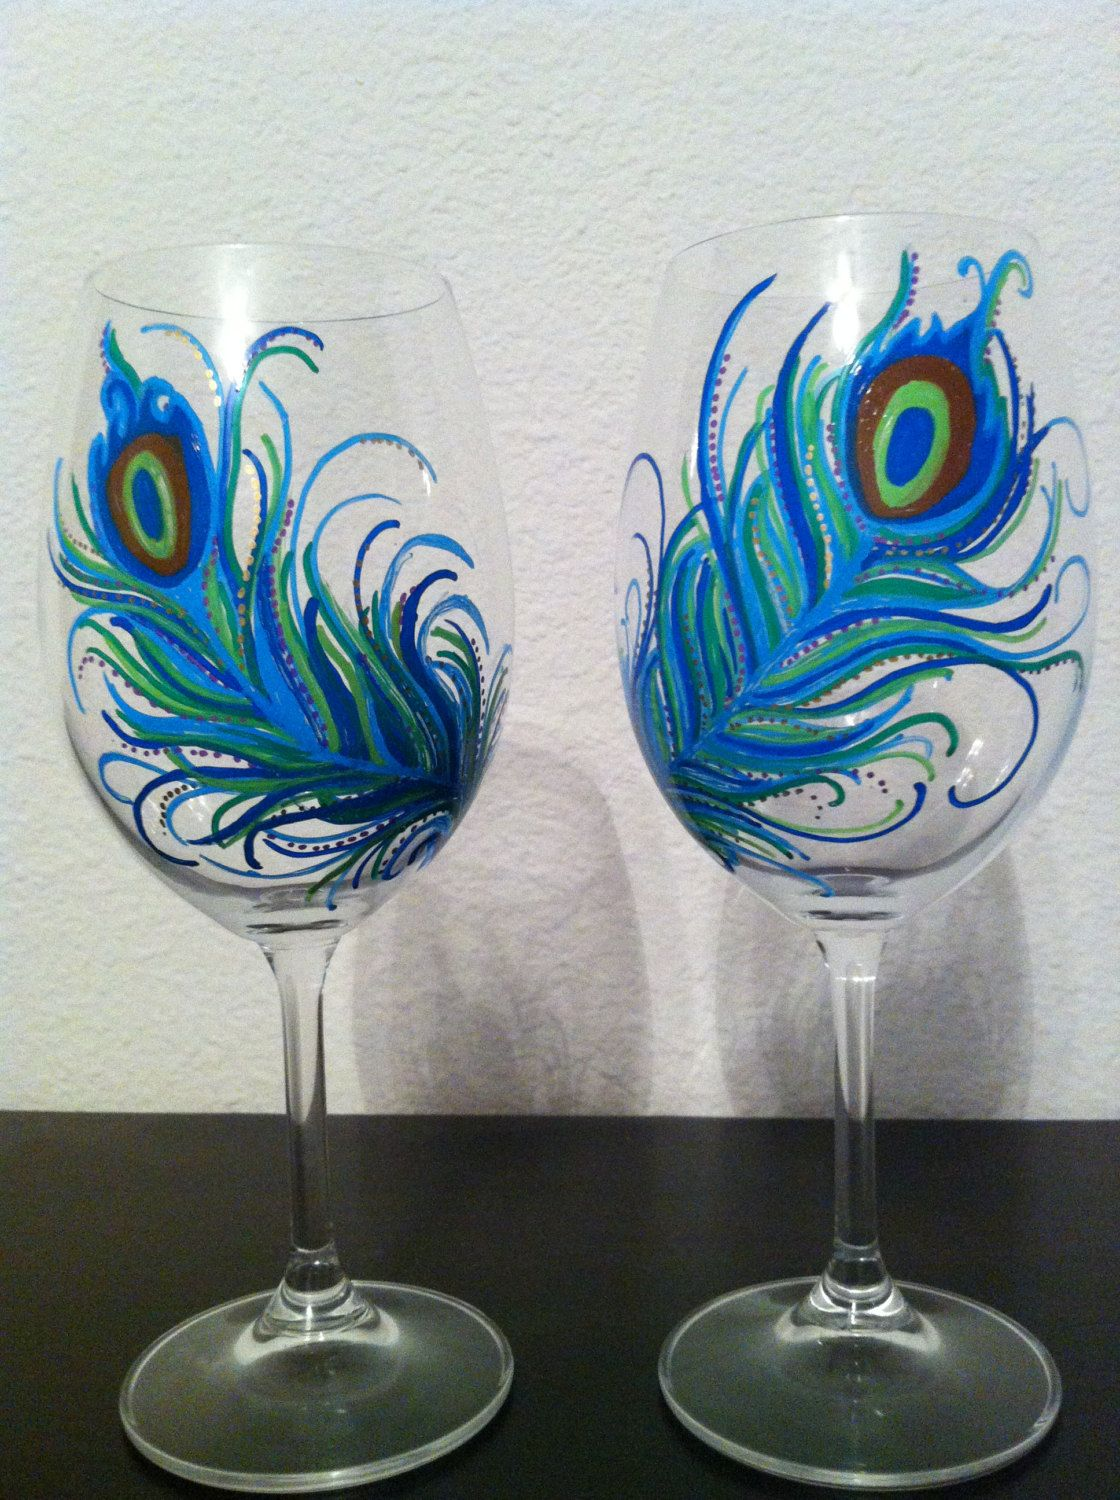 Wine Glass Design Ideas 10 awesome craft and decoration ideas using wine glasses Hand Painted Peacock Feather Wine Glasses Set Of 2 Creative Impossible Glassware Design